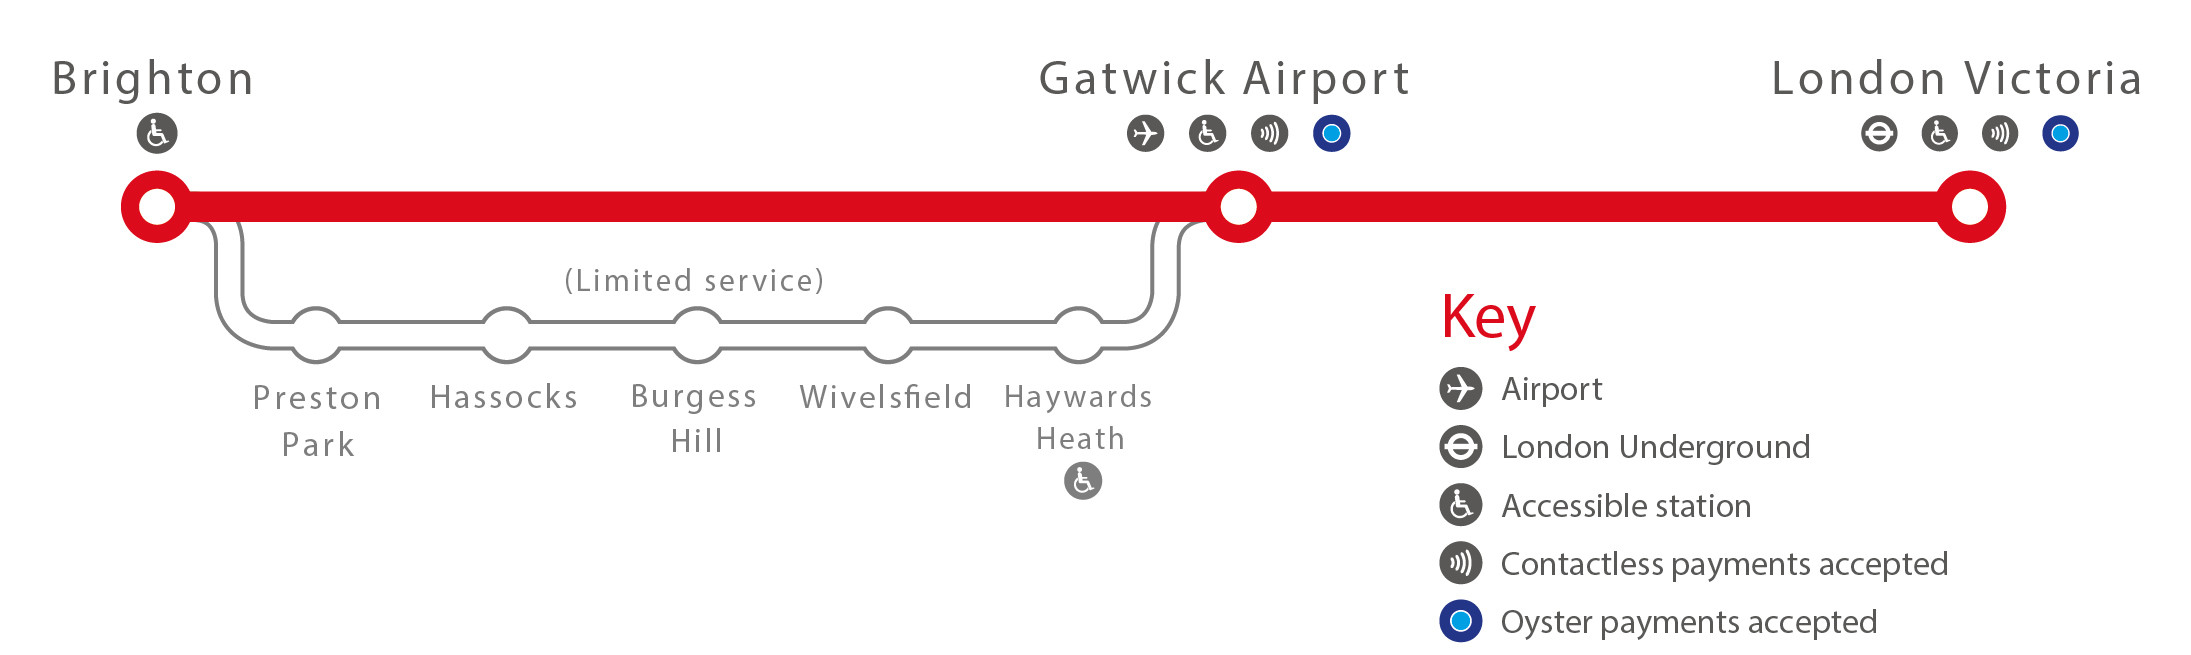 Gatwick Arrivals Everything You Need To Know In 18 Points